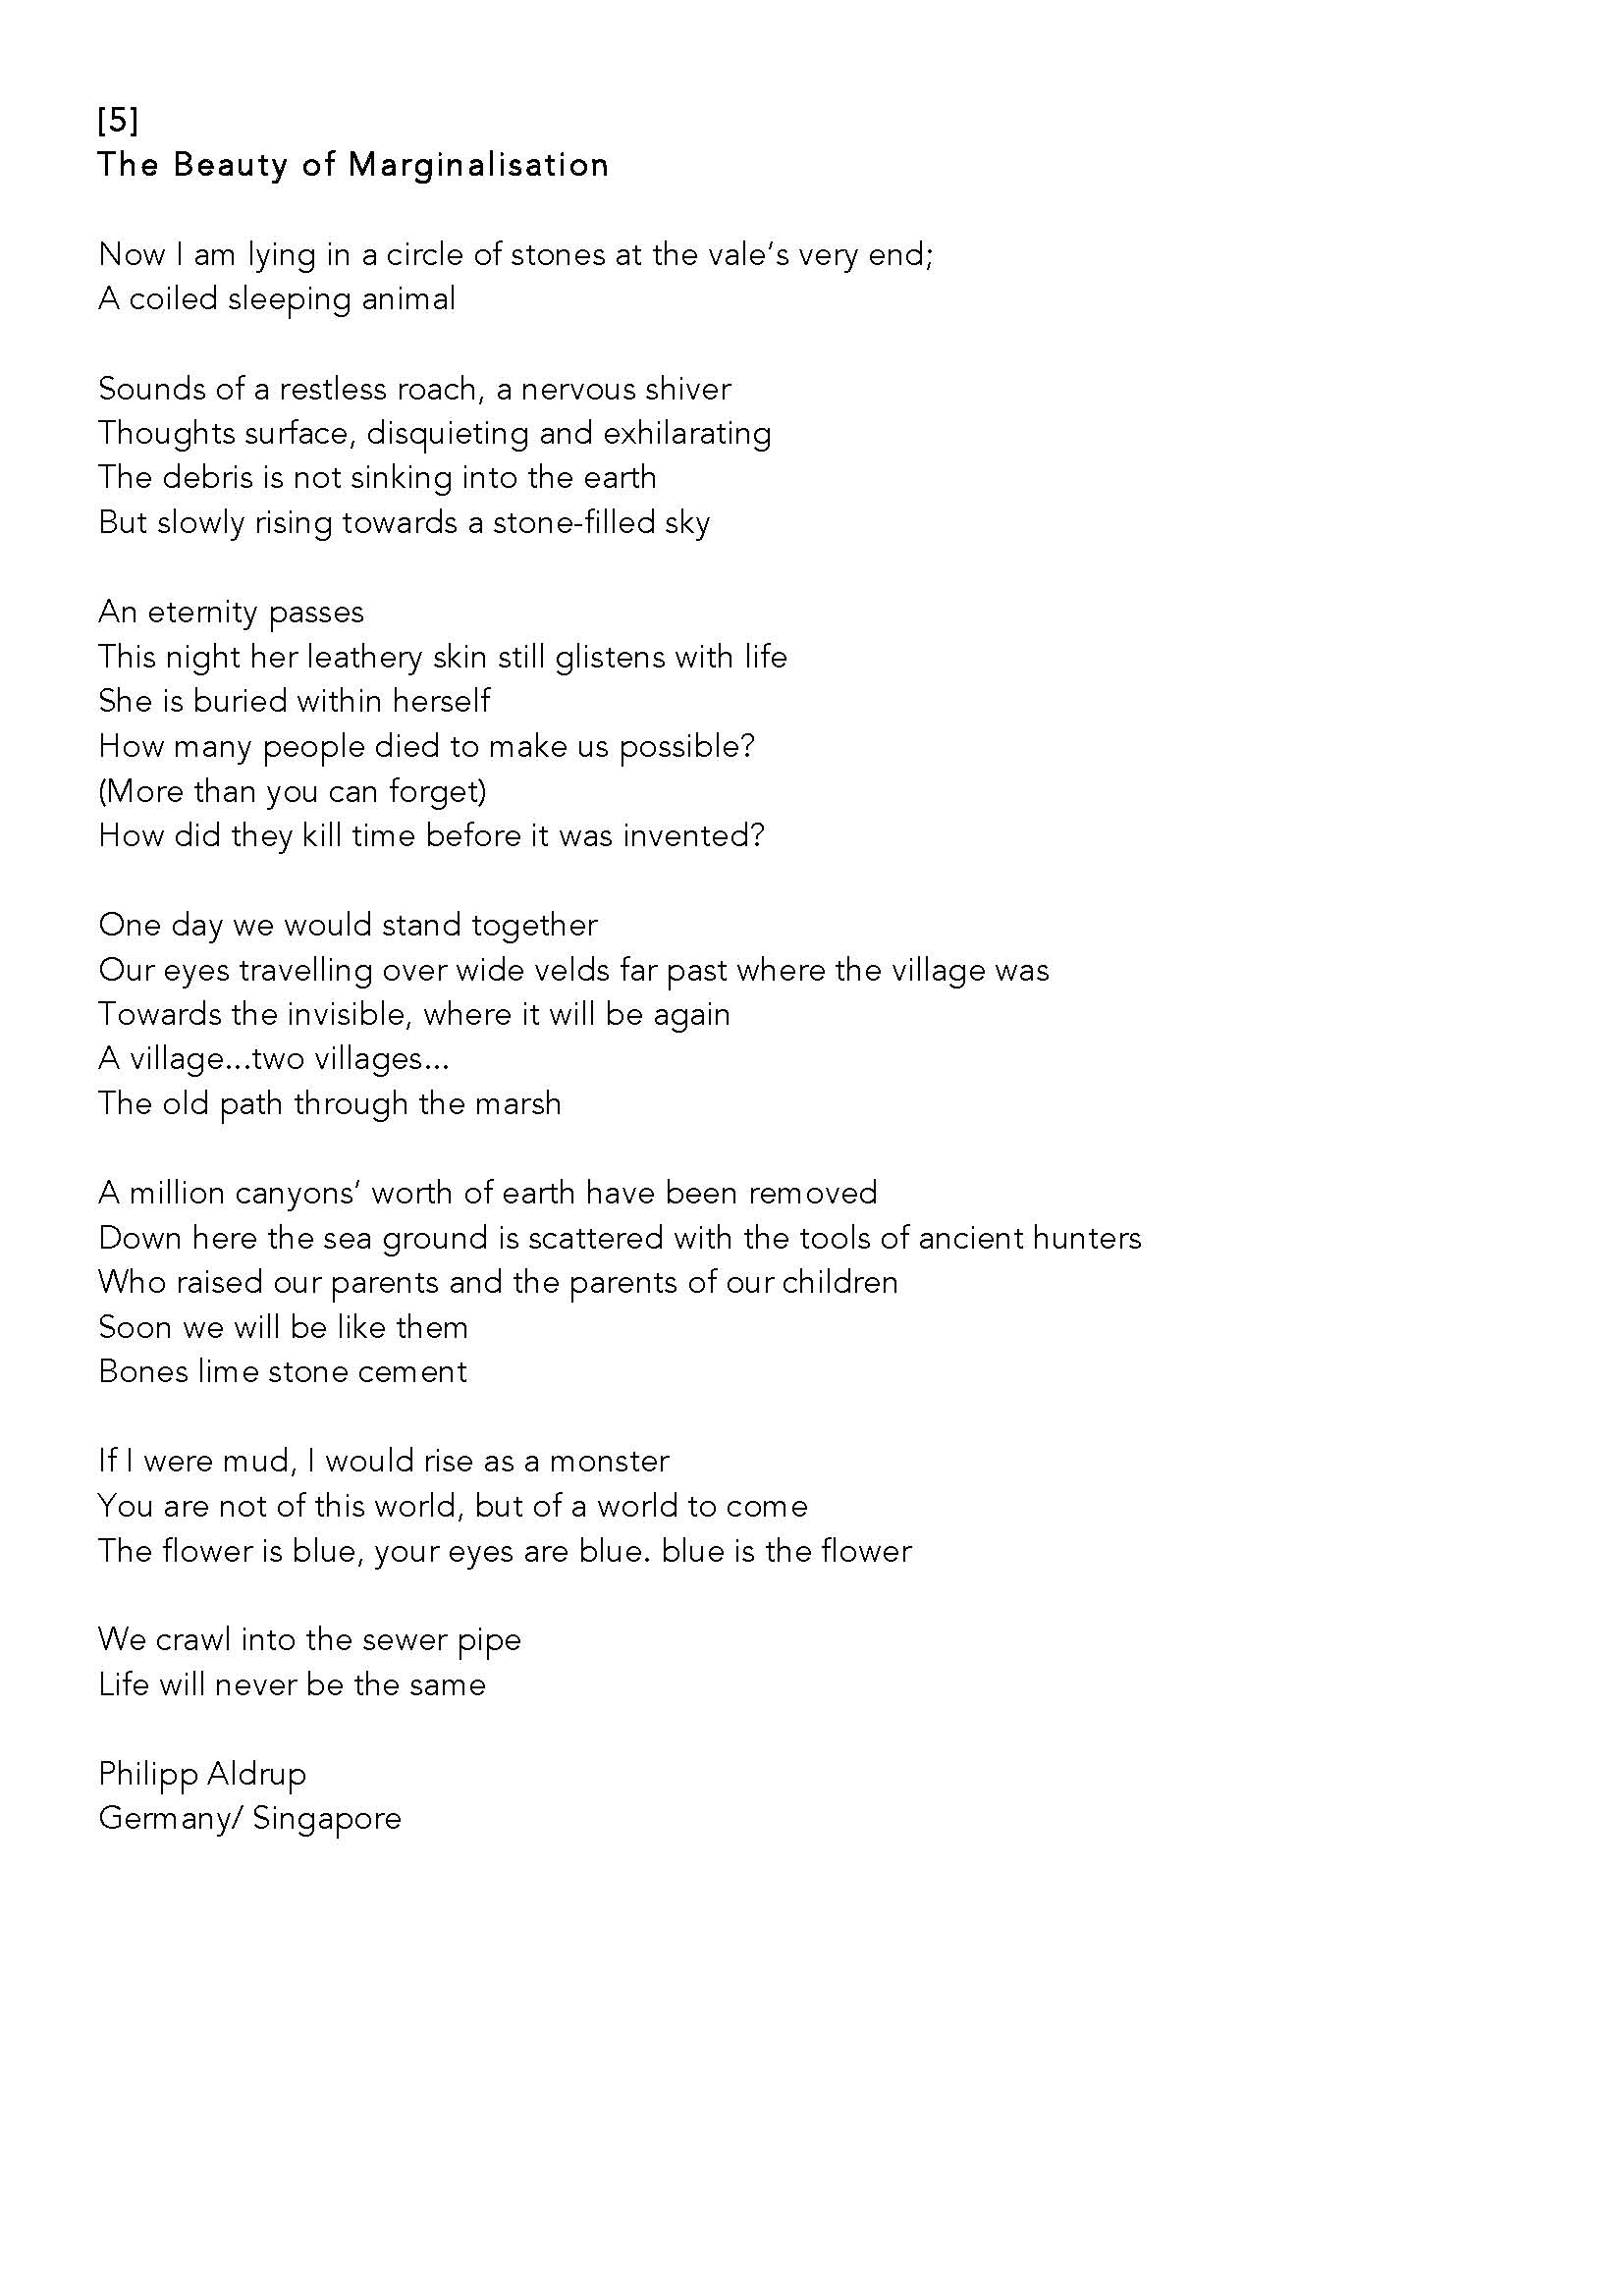 Poetry Collection - Everyone can Poetry _ For 16 Sept 2014_Page_05.jpg